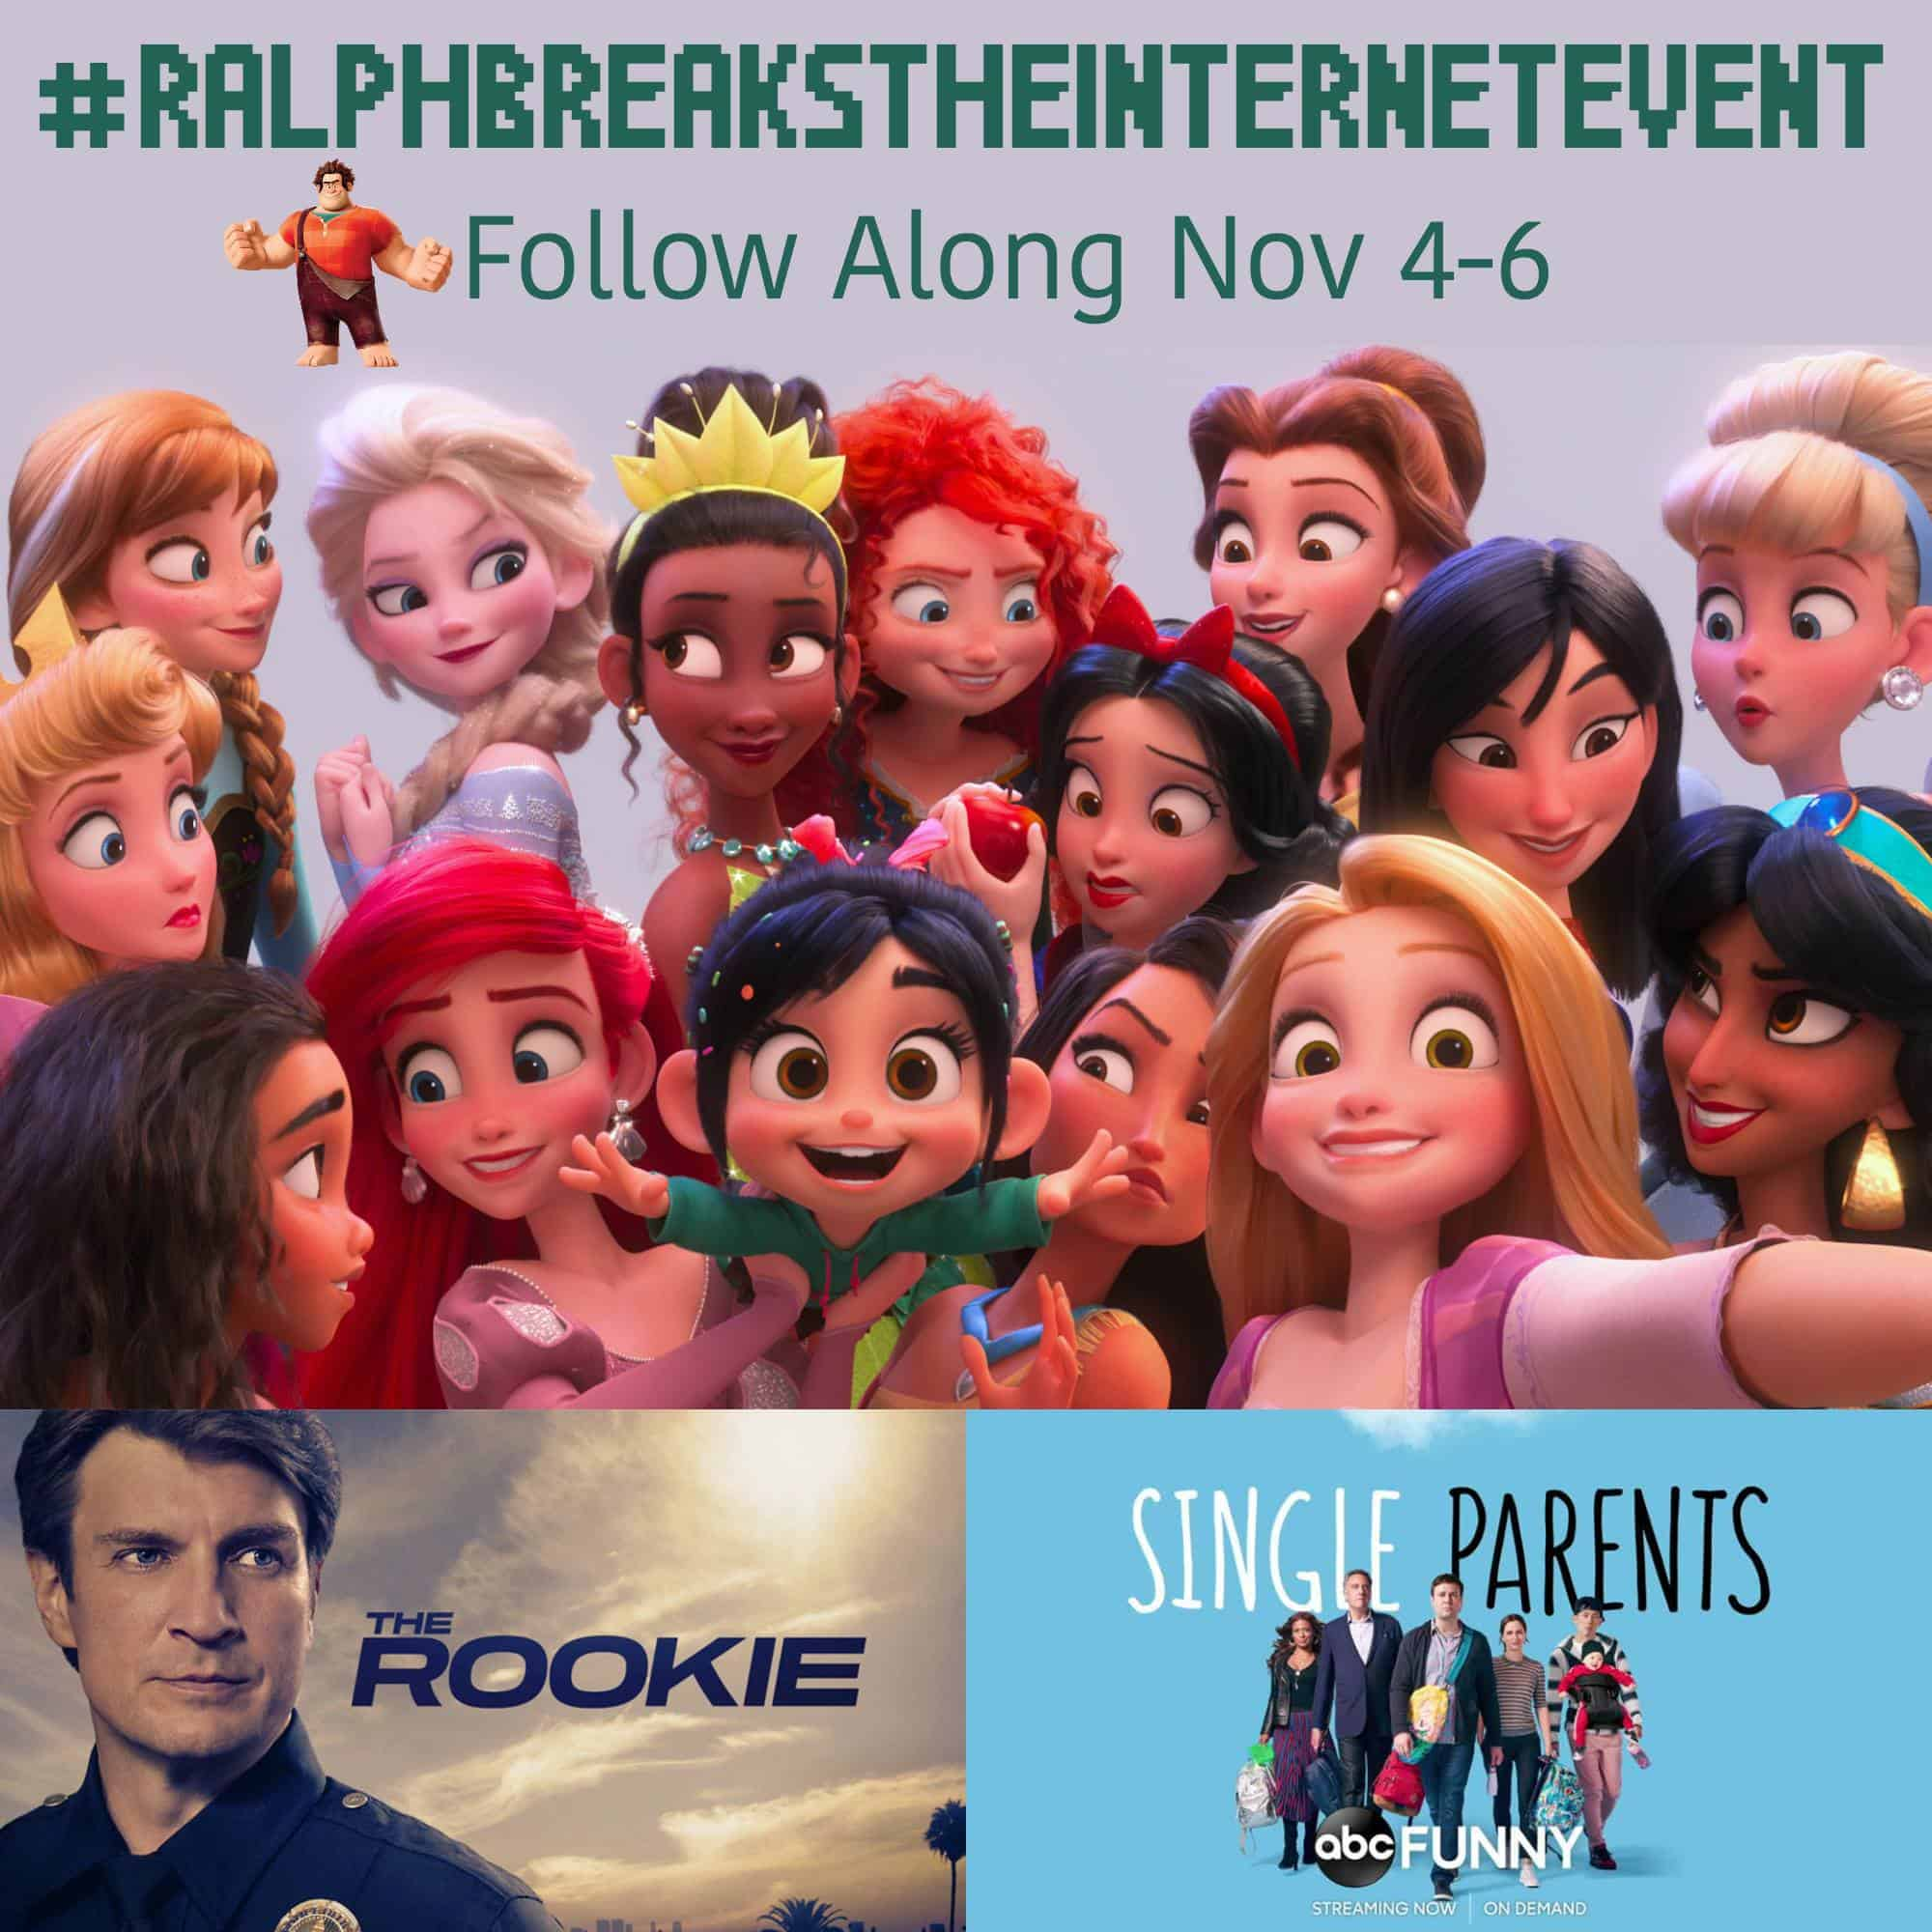 Ralph Breaks The Internet Event